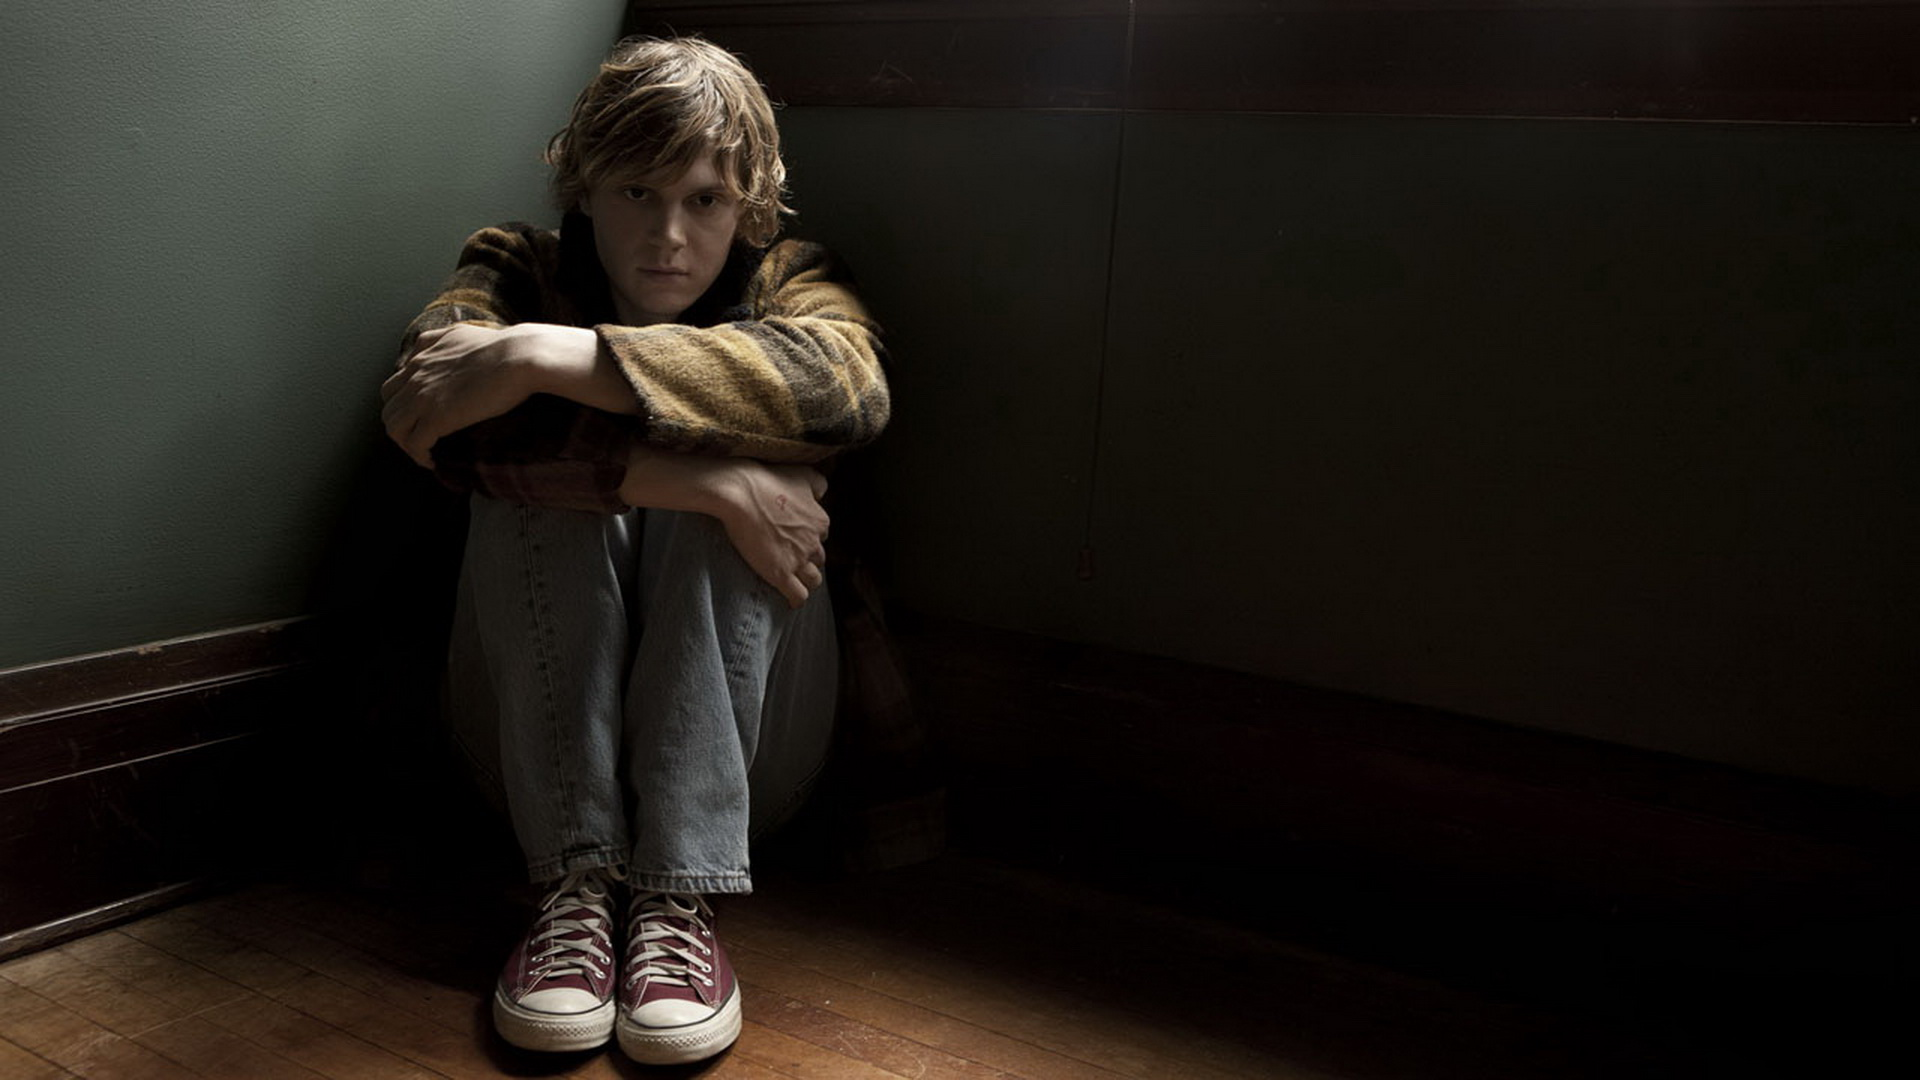 Evan peters wallpapers high resolution and quality download - Ahs wallpaper ...